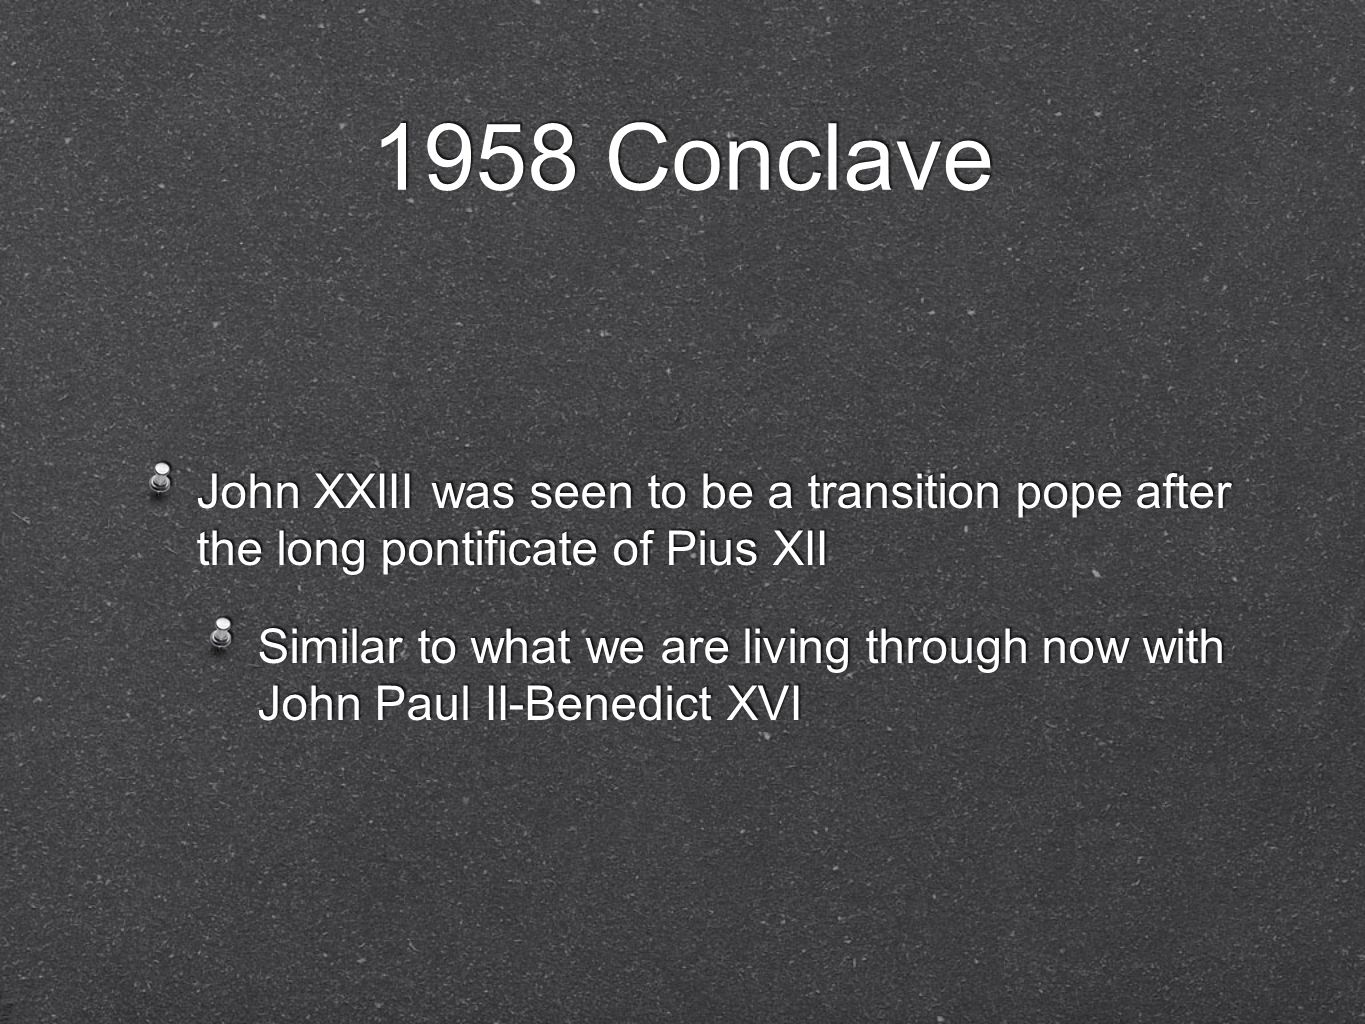 1958 Conclave John XXIII was seen to be a transition pope after the long pontificate of Pius XII.